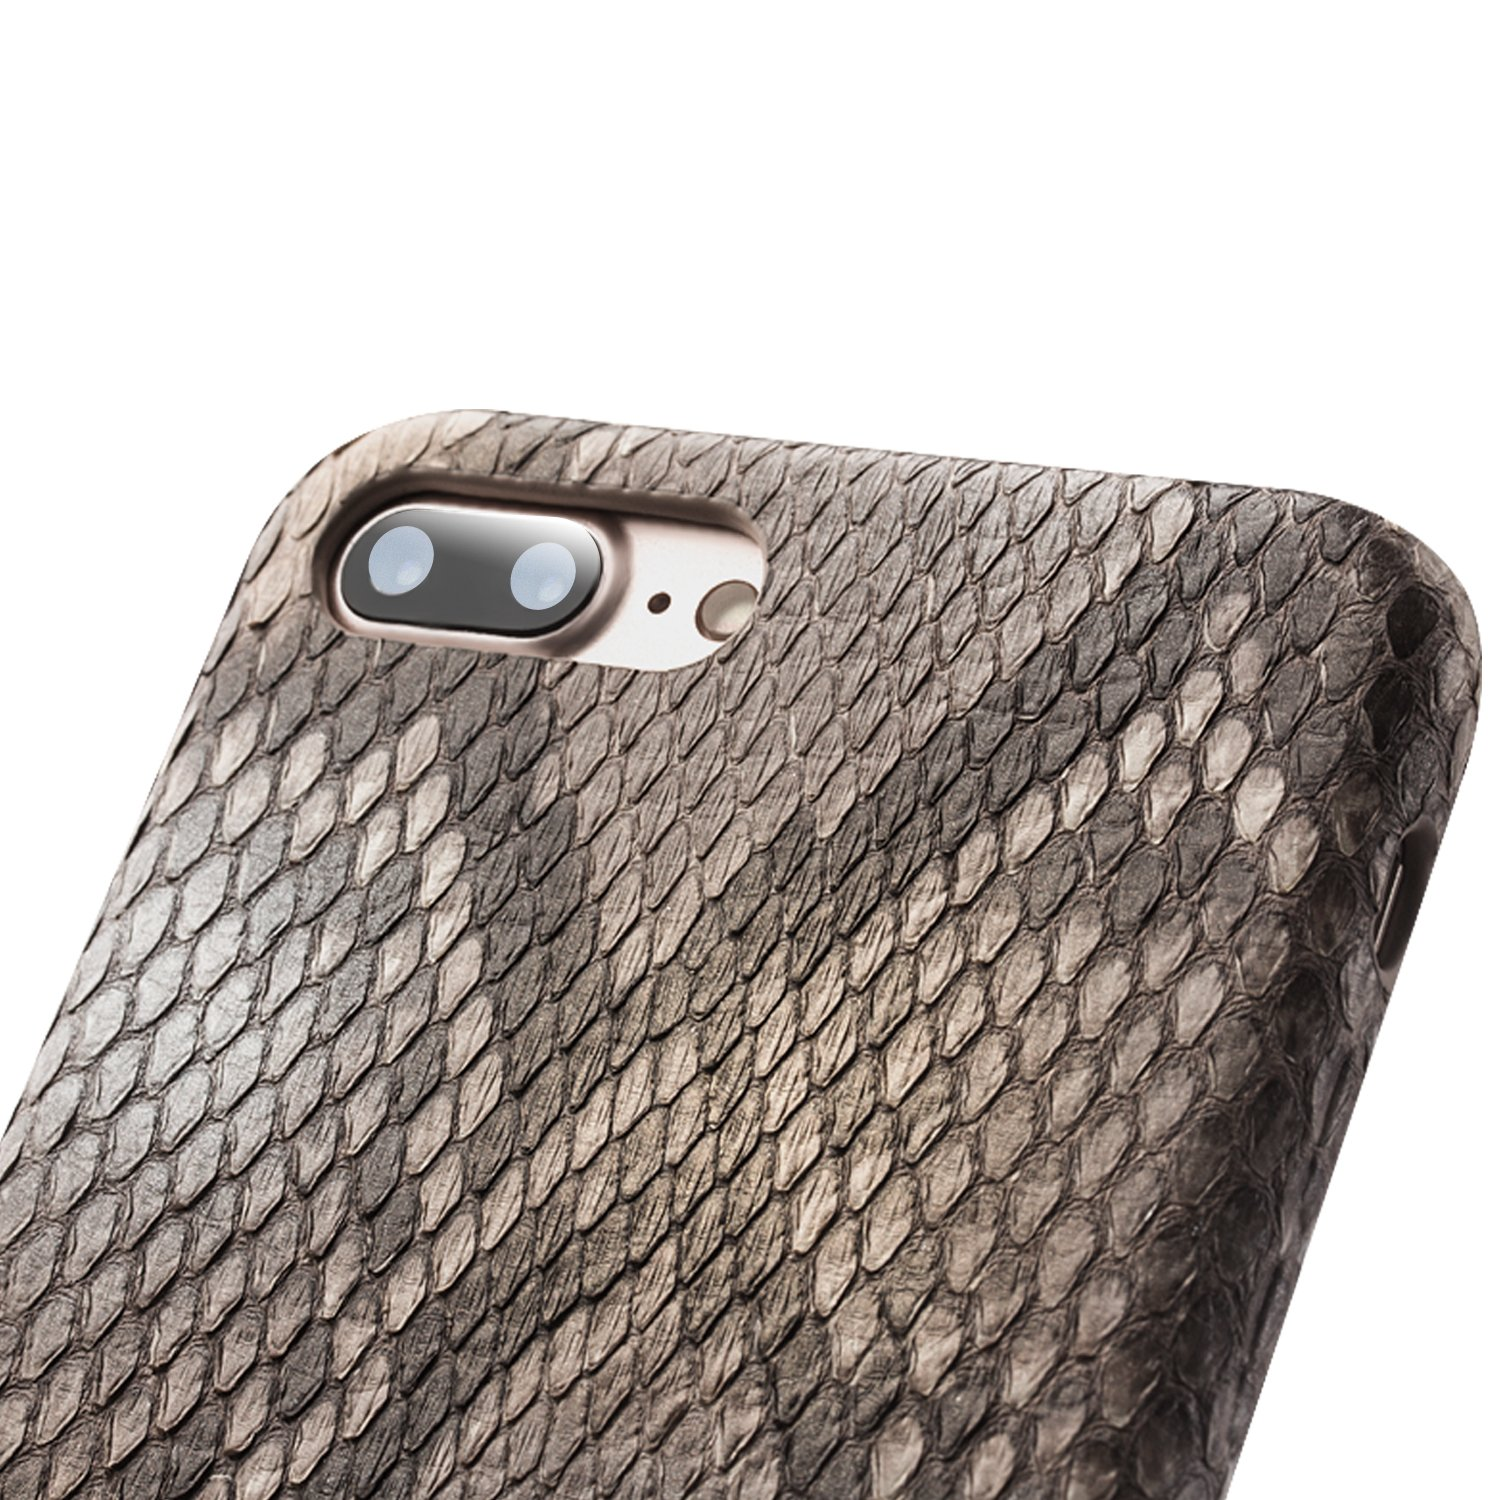 iPhone 8 Plus Case, iPhone 7 Plus Case, QIALINO Unique Style Genuine Leather Cover Flip Sleeve for Apple iPhone 8Plus / 7Plus by QIALINO (Image #6)